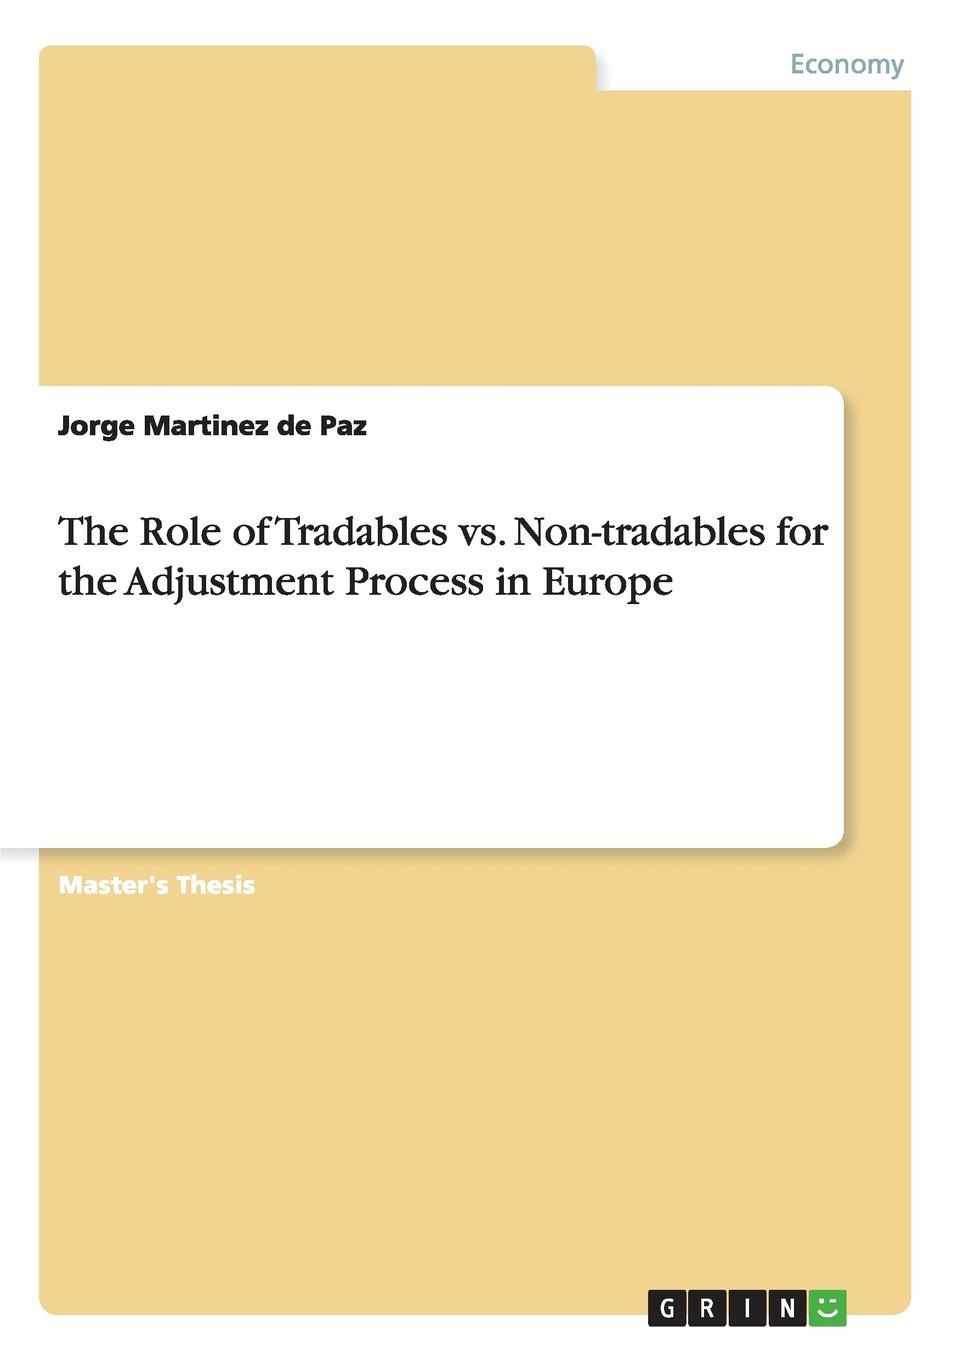 Jorge Martinez de Paz The Role of Tradables vs. Non-tradables for the Adjustment Process in Europe role of seeding rates and cutting stages on yield and quality